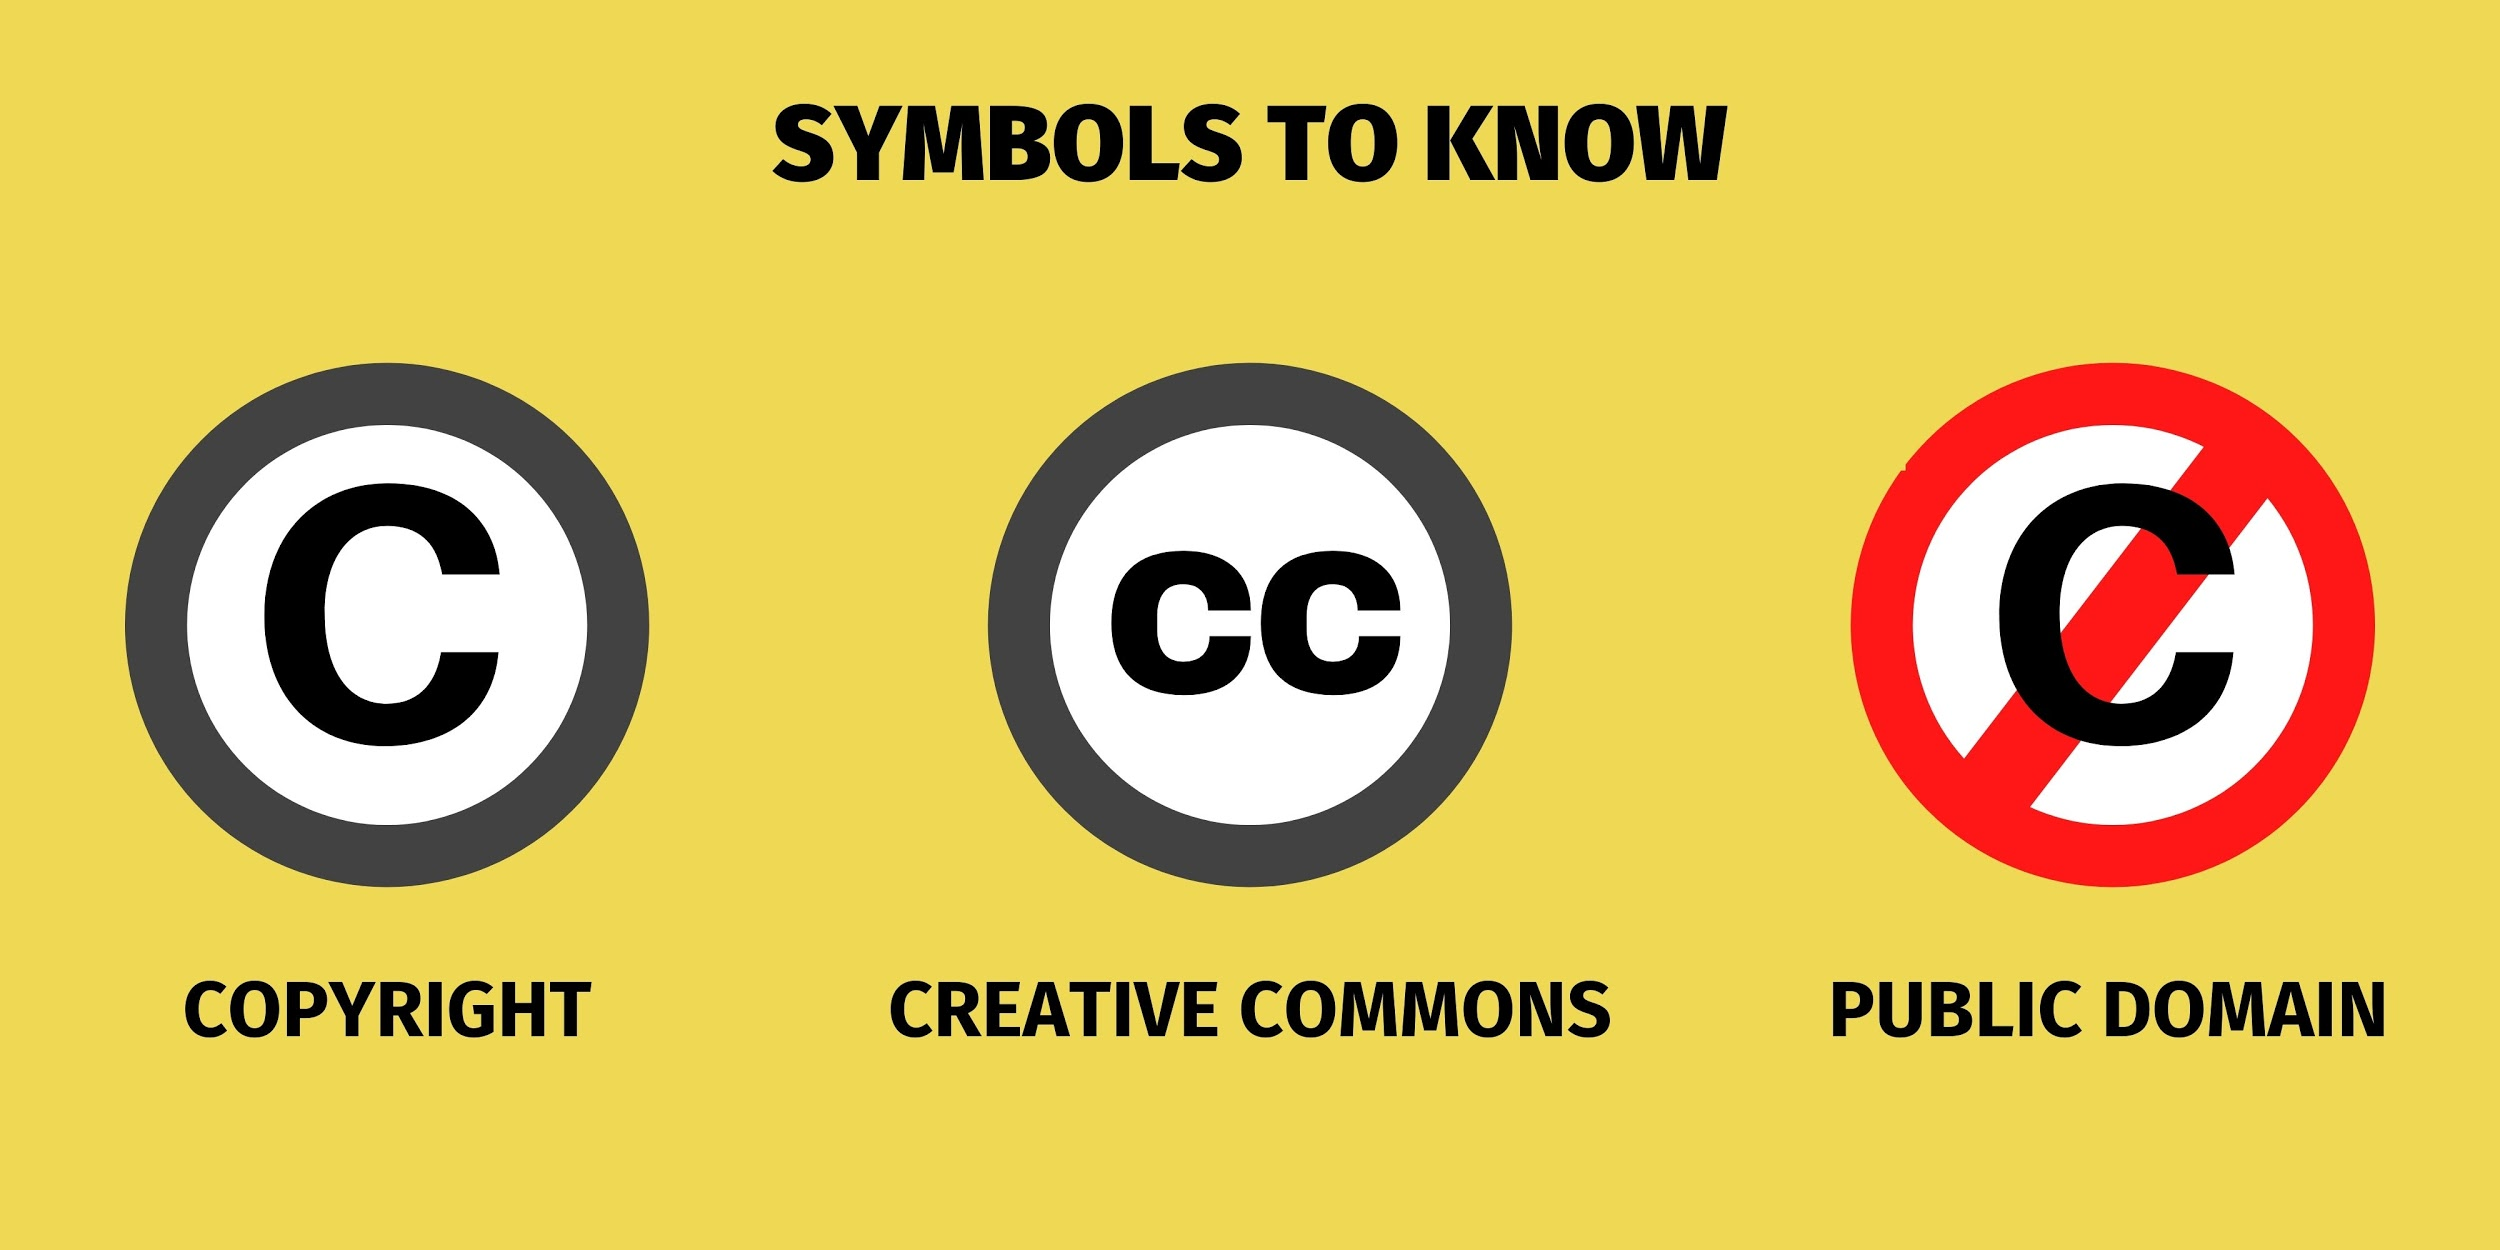 How to post music on Facebook without Copyright : Symbols to identify licensing of music